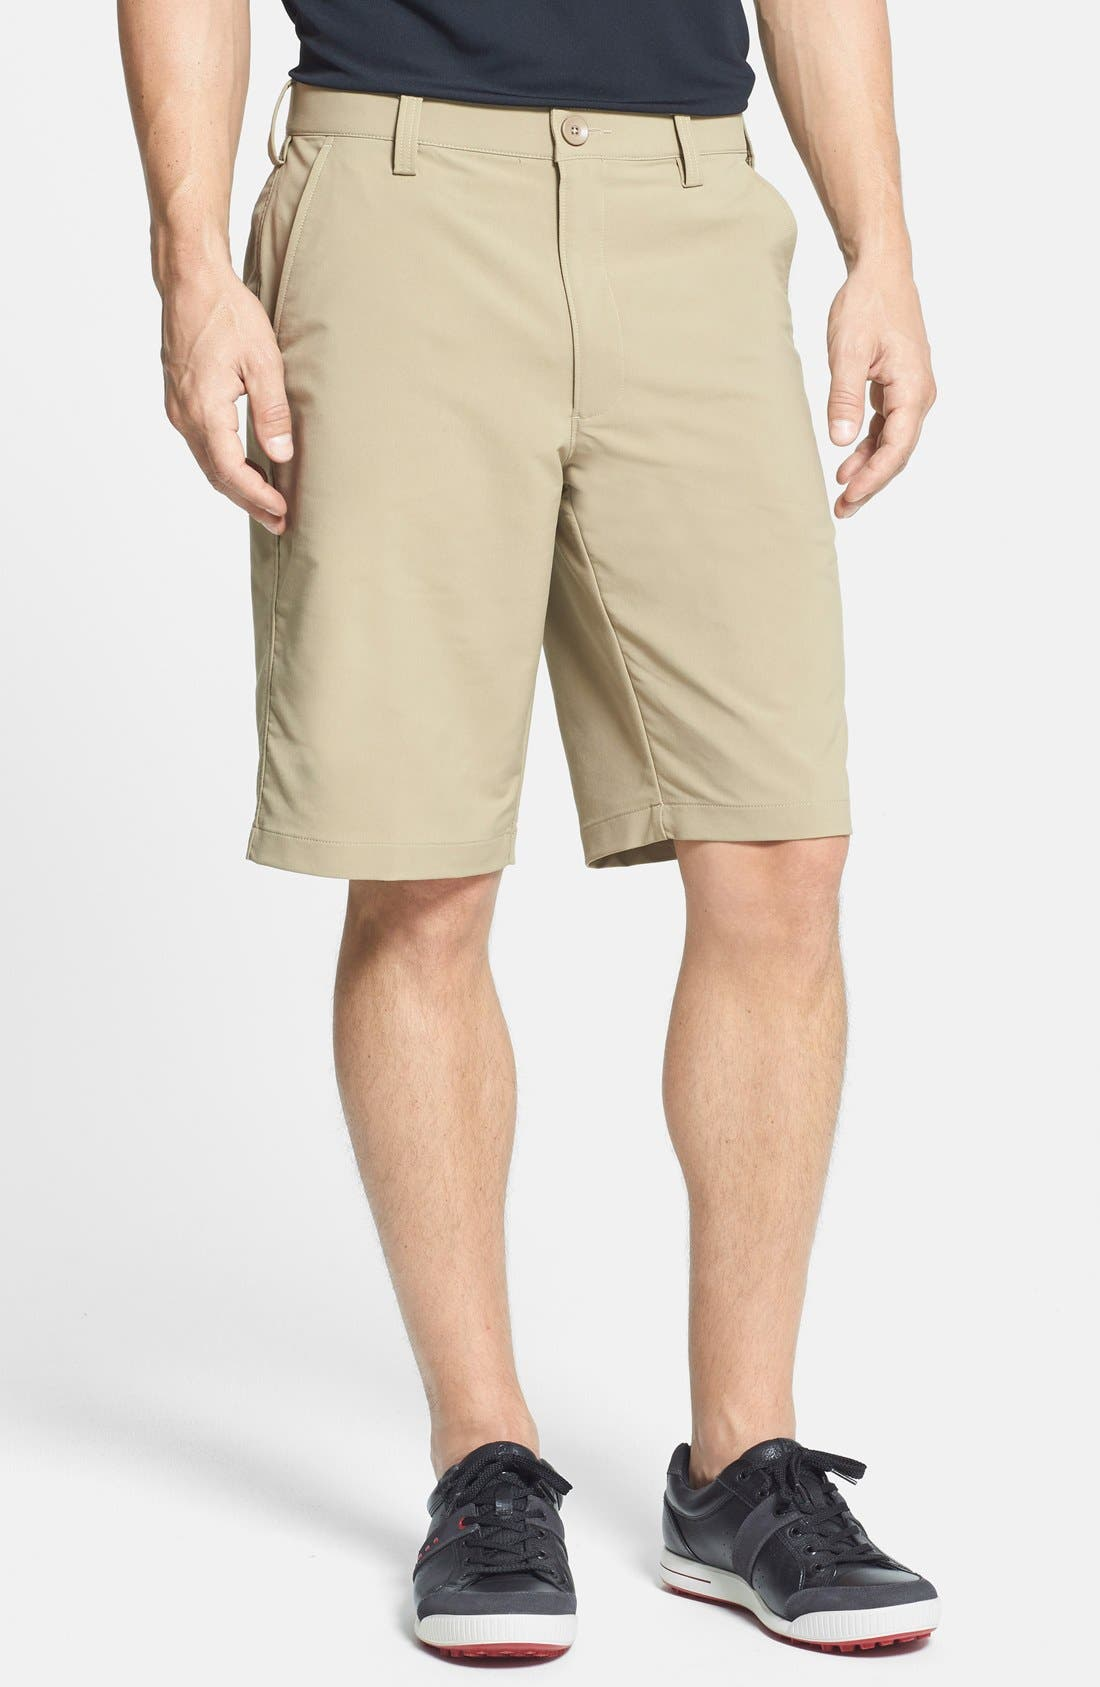 Main Image - Under Armour 'Bent Grass 2.0' Woven Golf Shorts